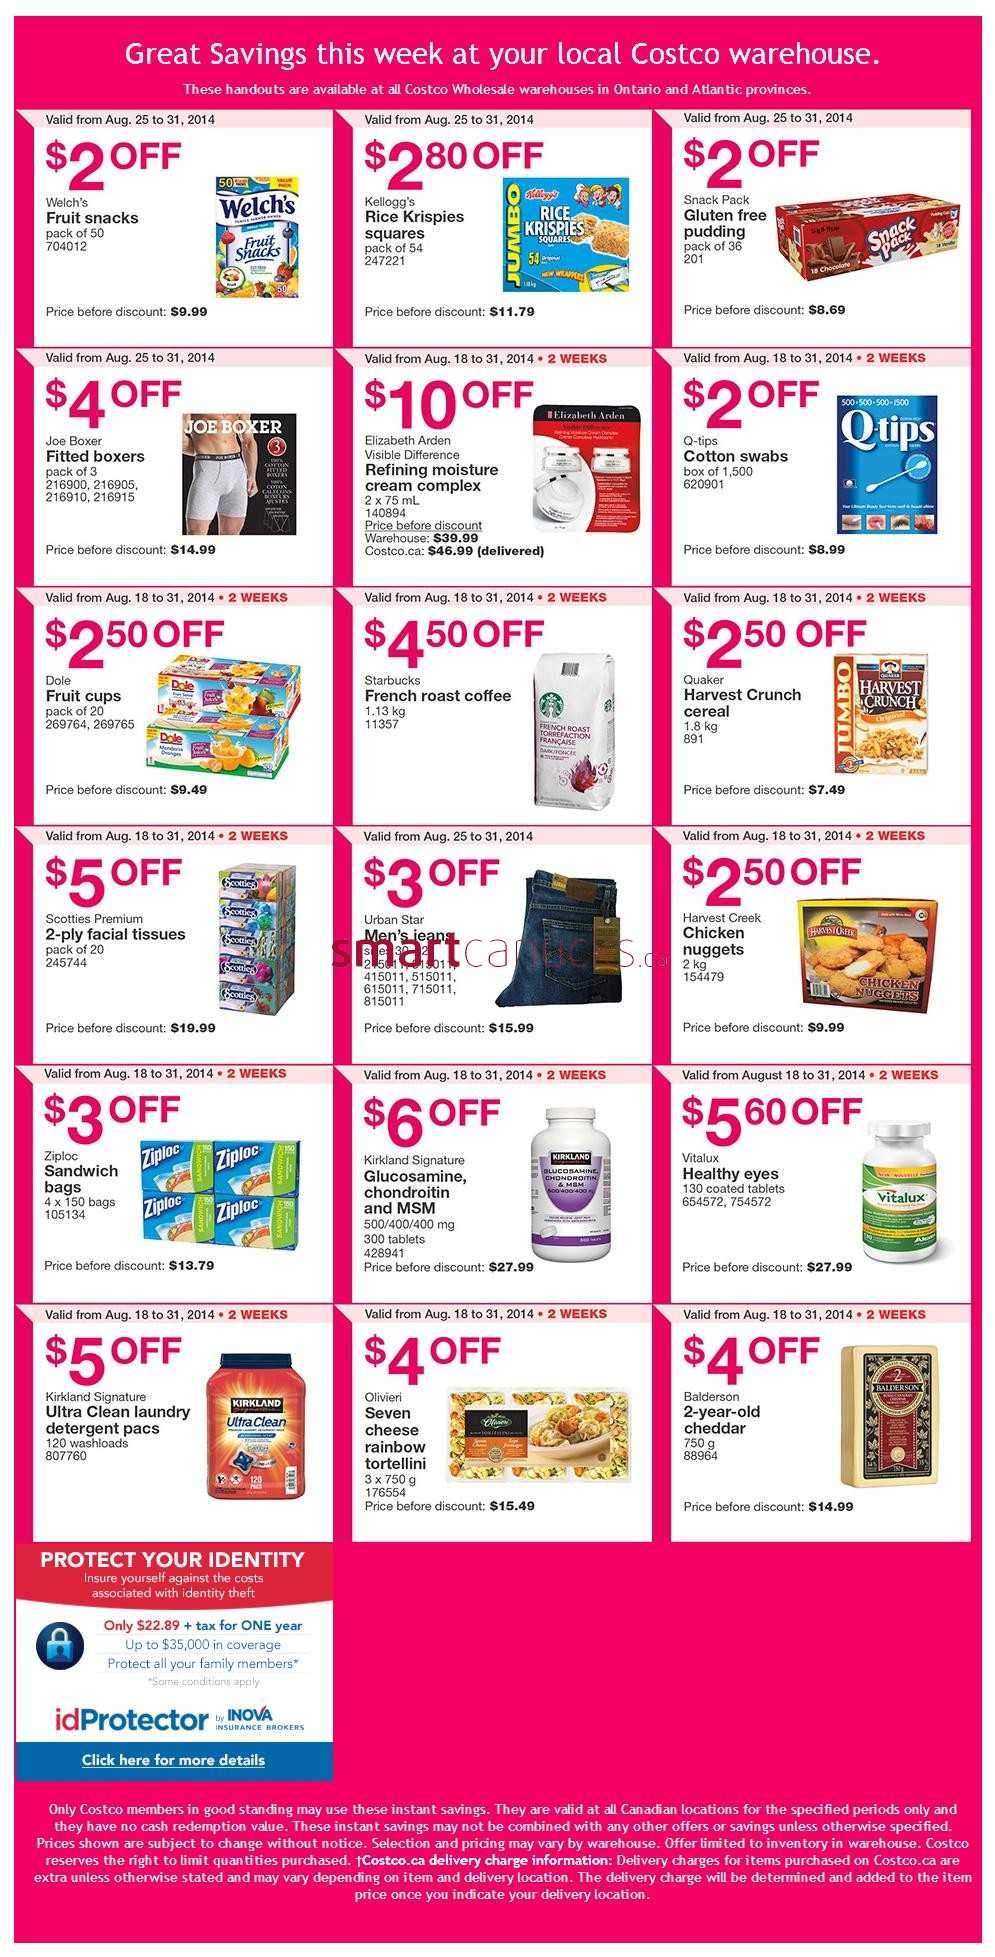 Costco weekly savings ontario and atlantic canada august 25 to 31